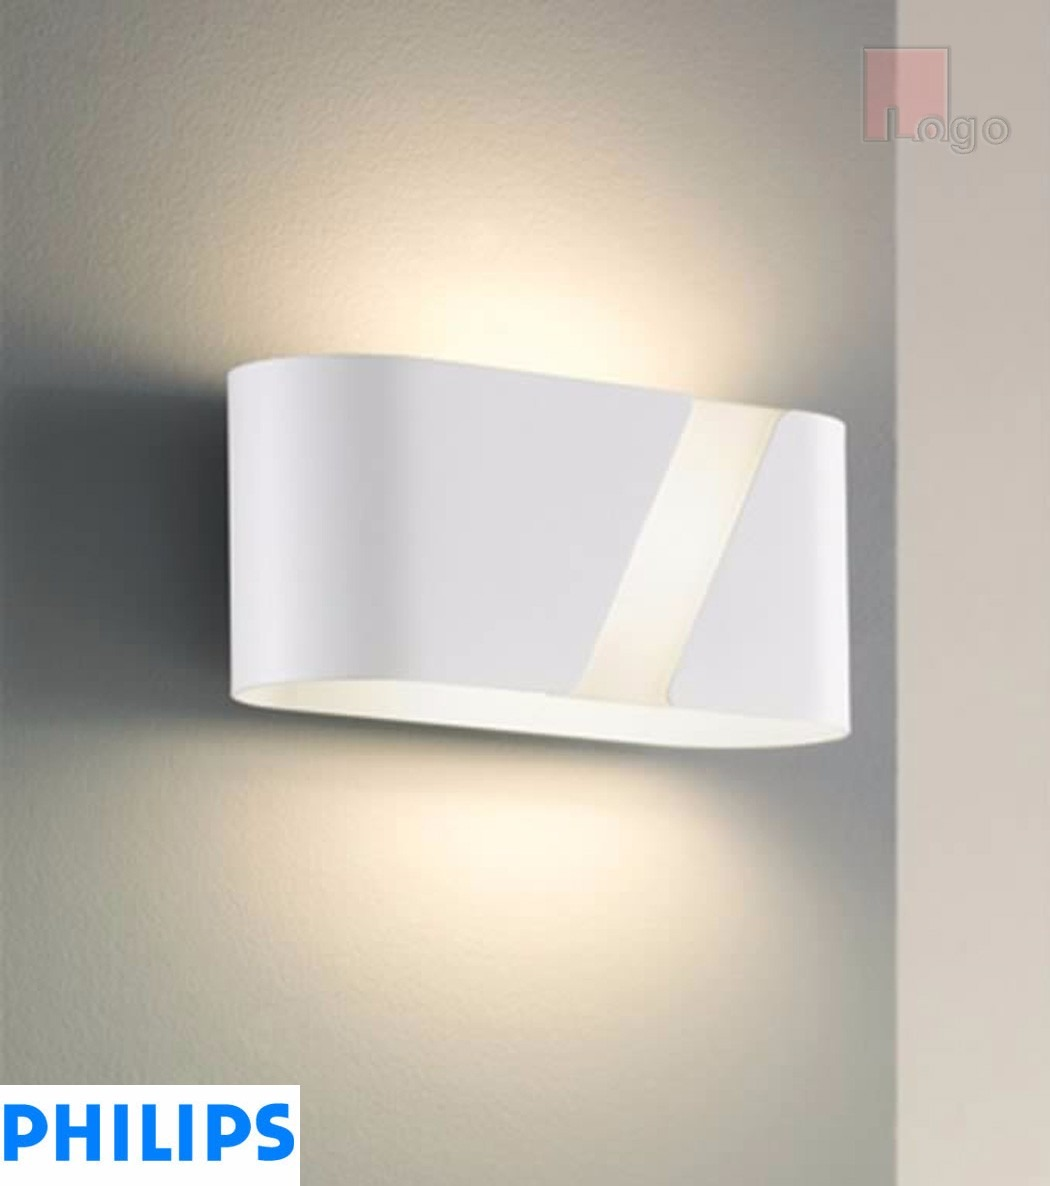 Luz Pared Top Hyuob Led Led Integrado Modernos Y Para Led De  ~ Apliques De Pared Para Escaleras